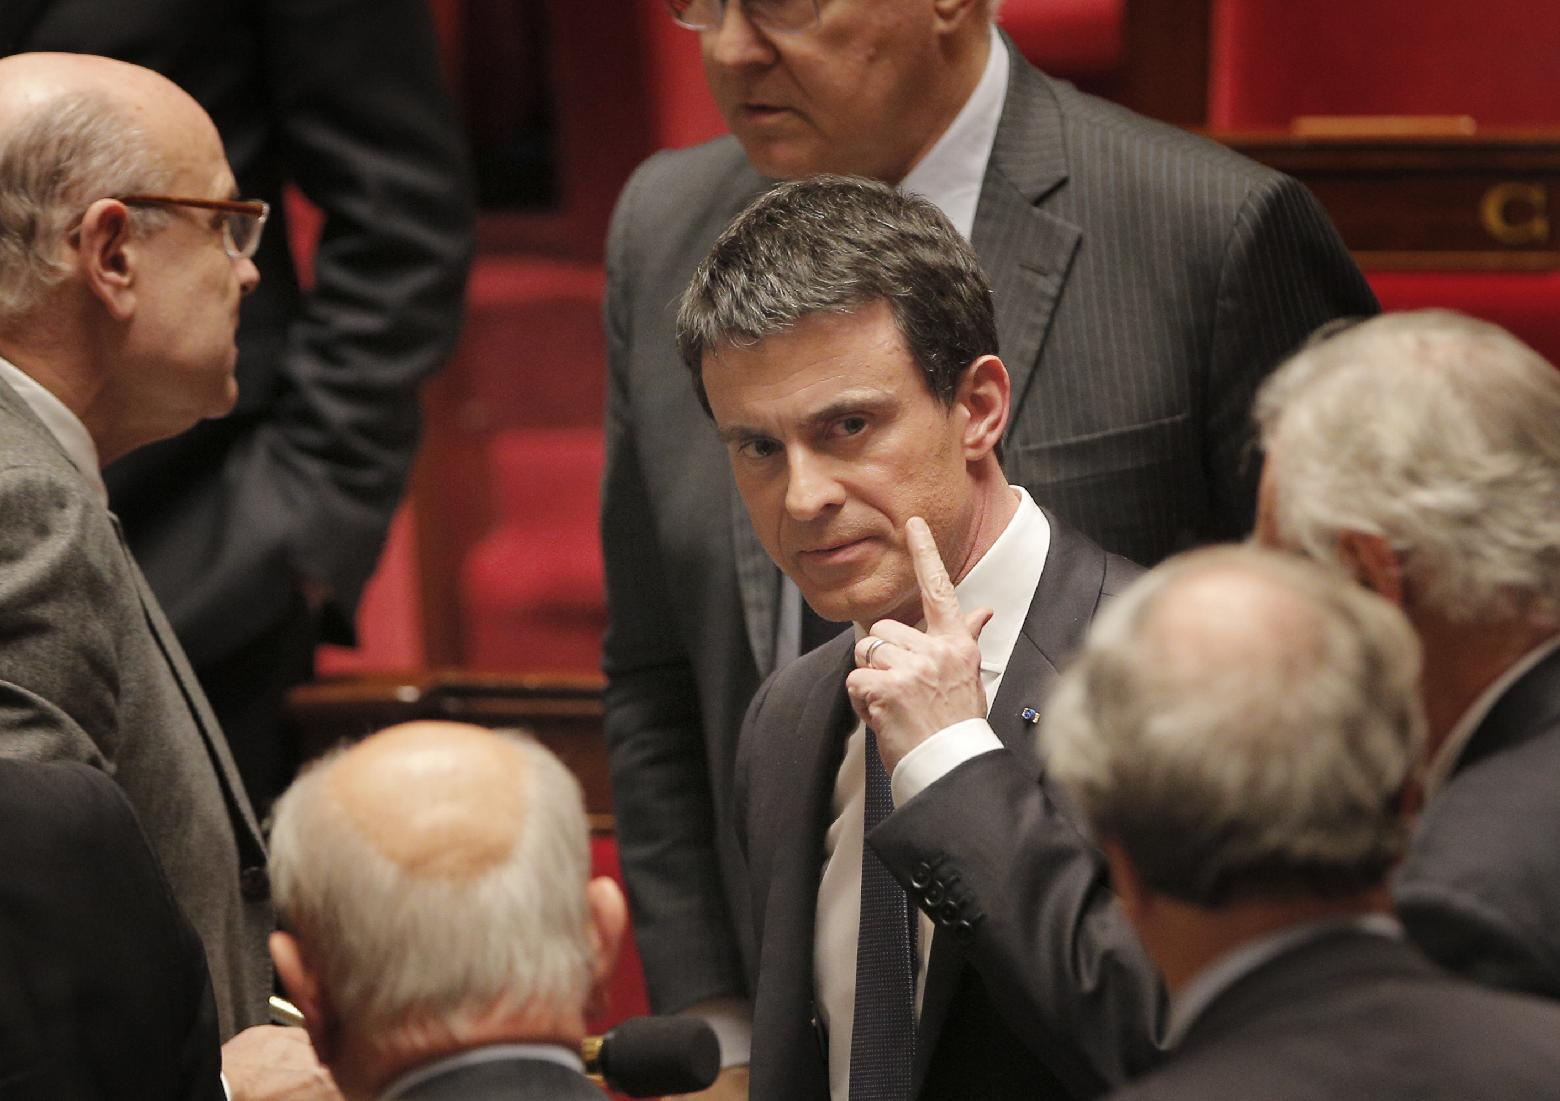 French lawmakers approve divisive citizenship bill